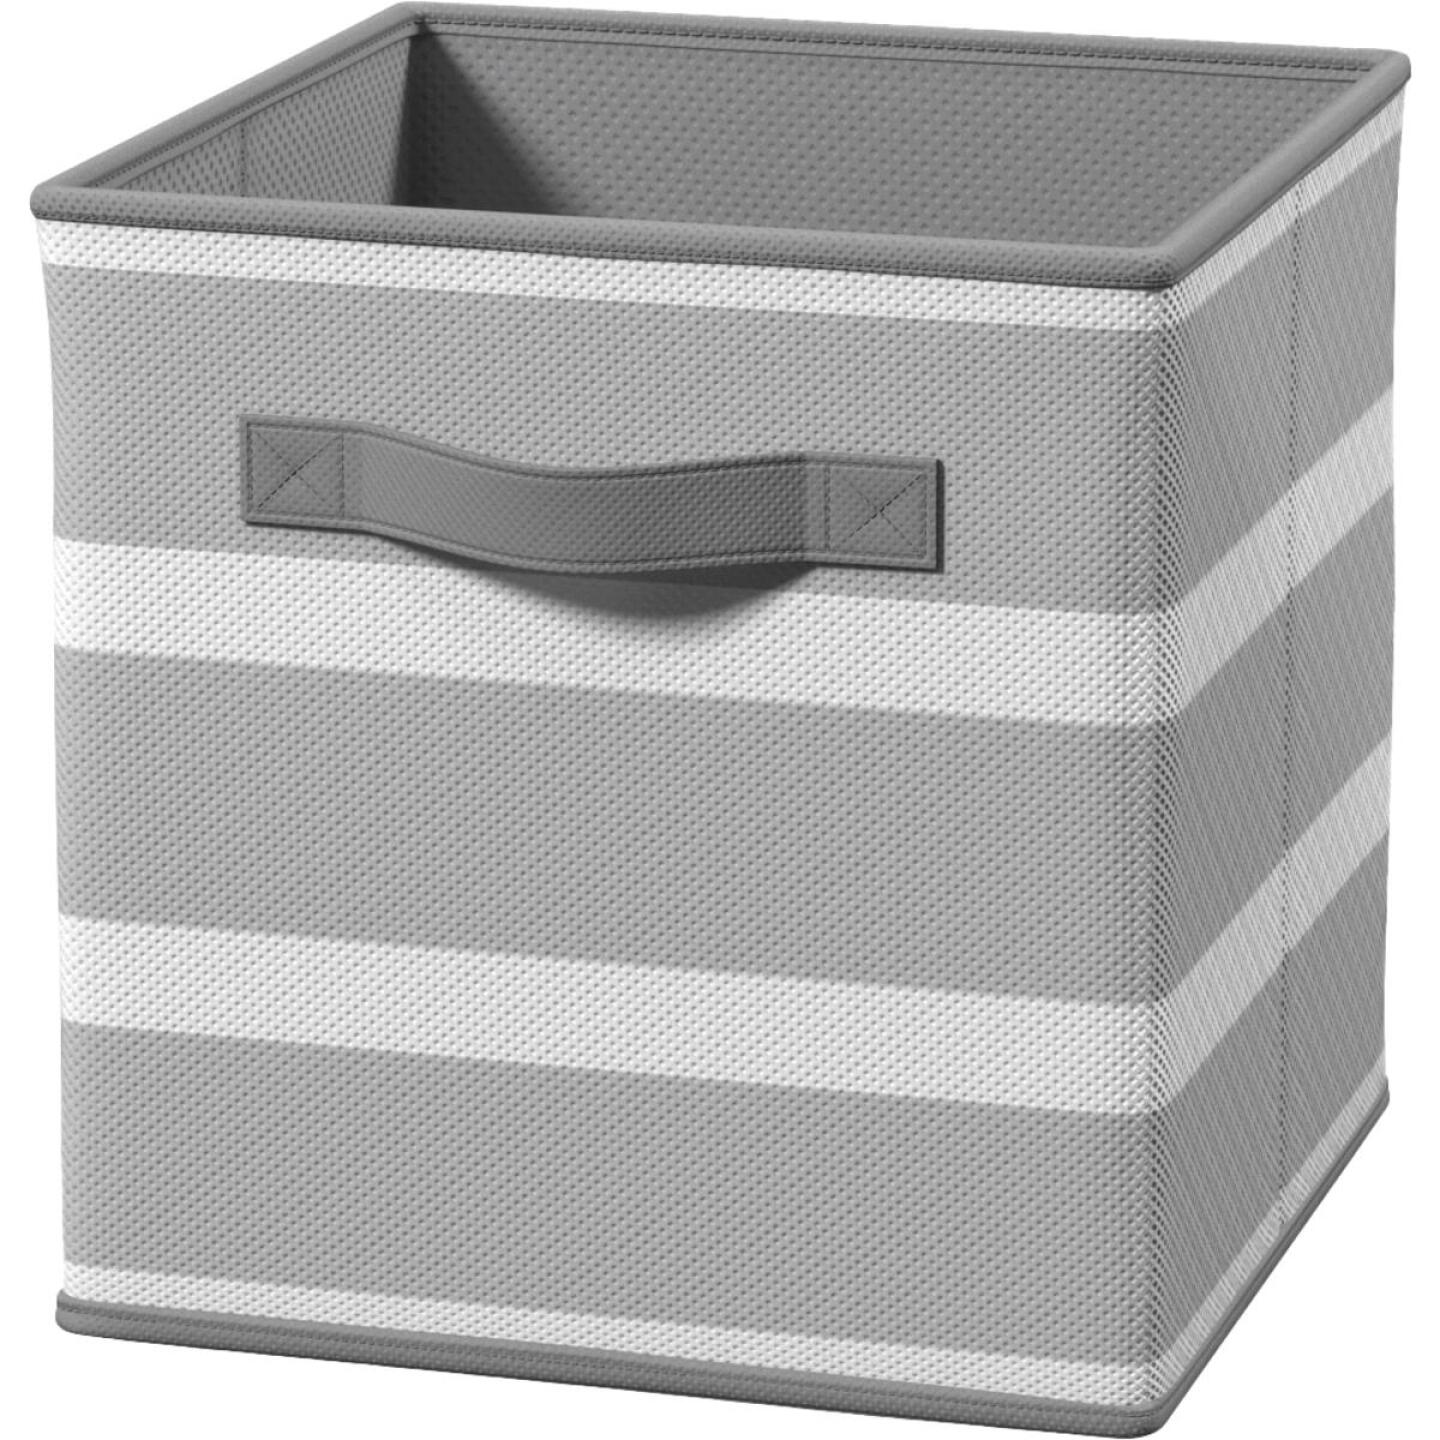 ClosetMaid Cubeicals 10.5 In. W. x 11 In. H. Gray Fabric Drawer Image 1